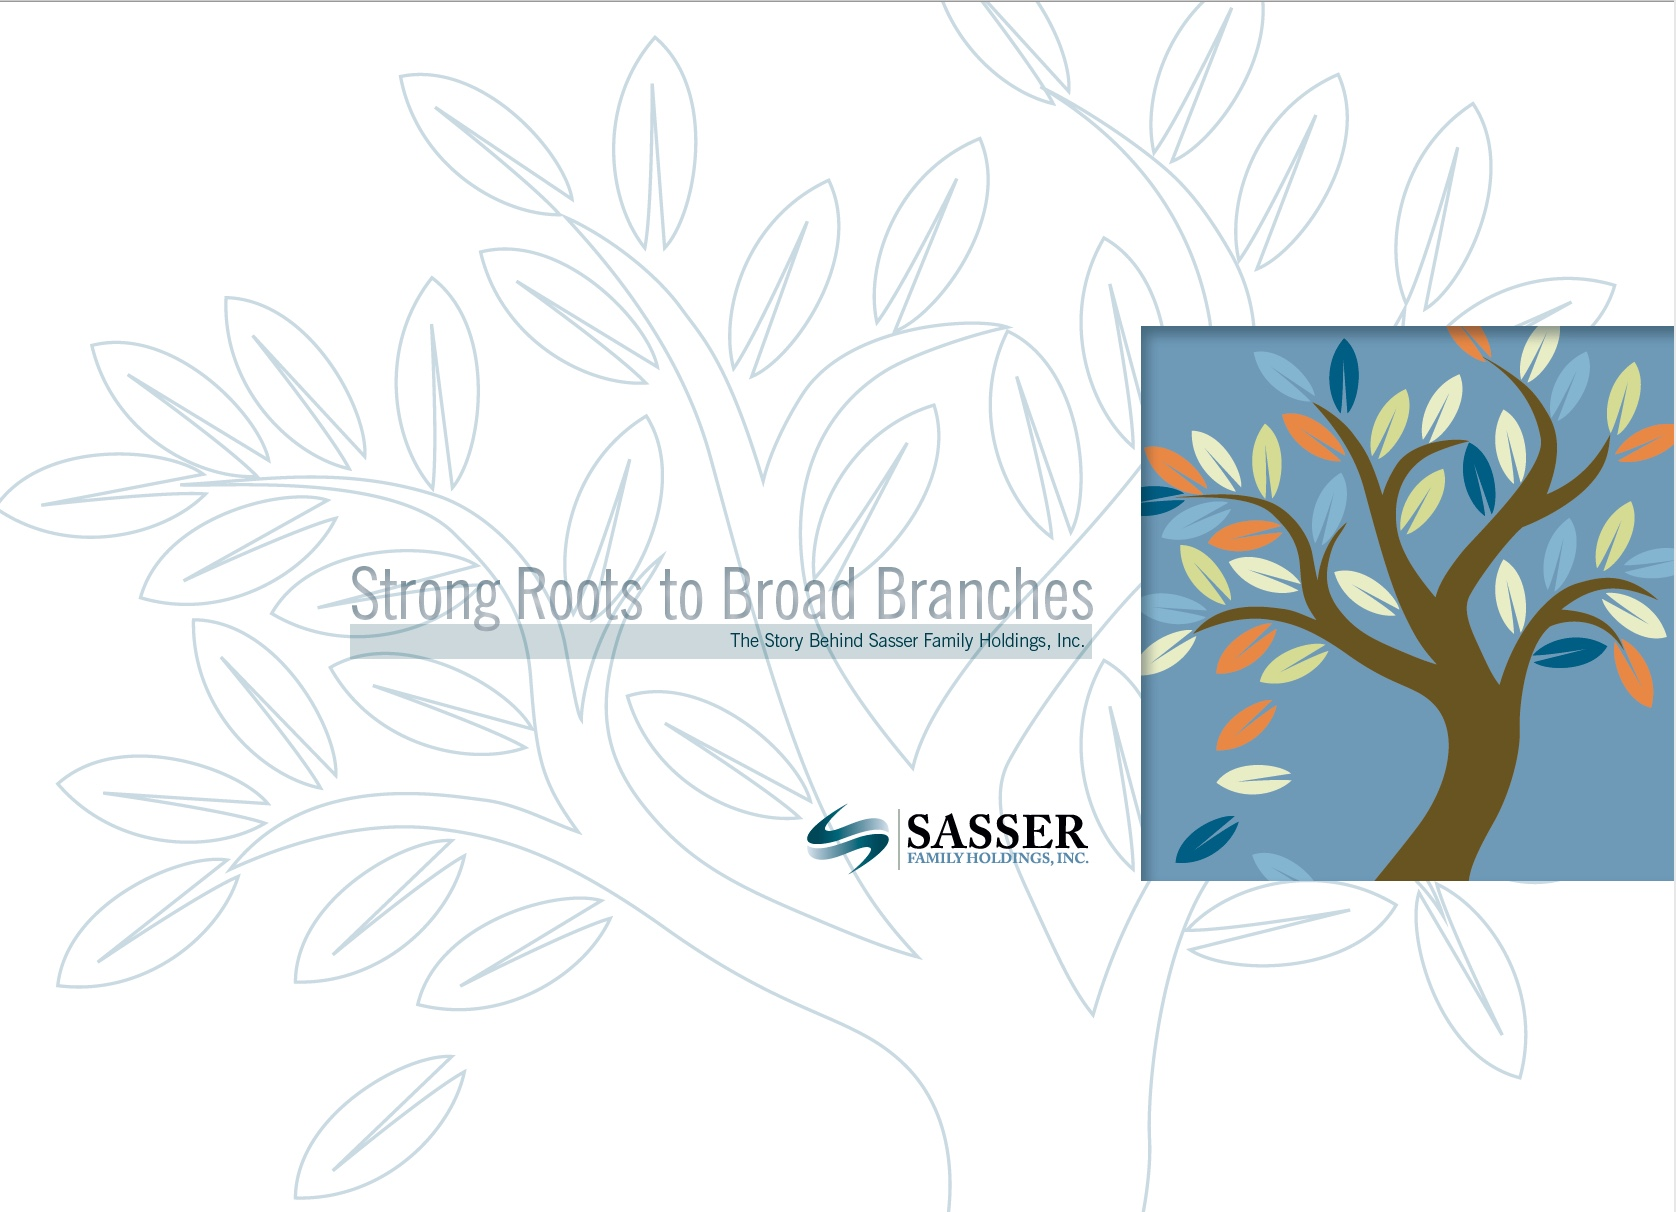 Sasser Family Holdings, Inc.: Deep roots to broad branches